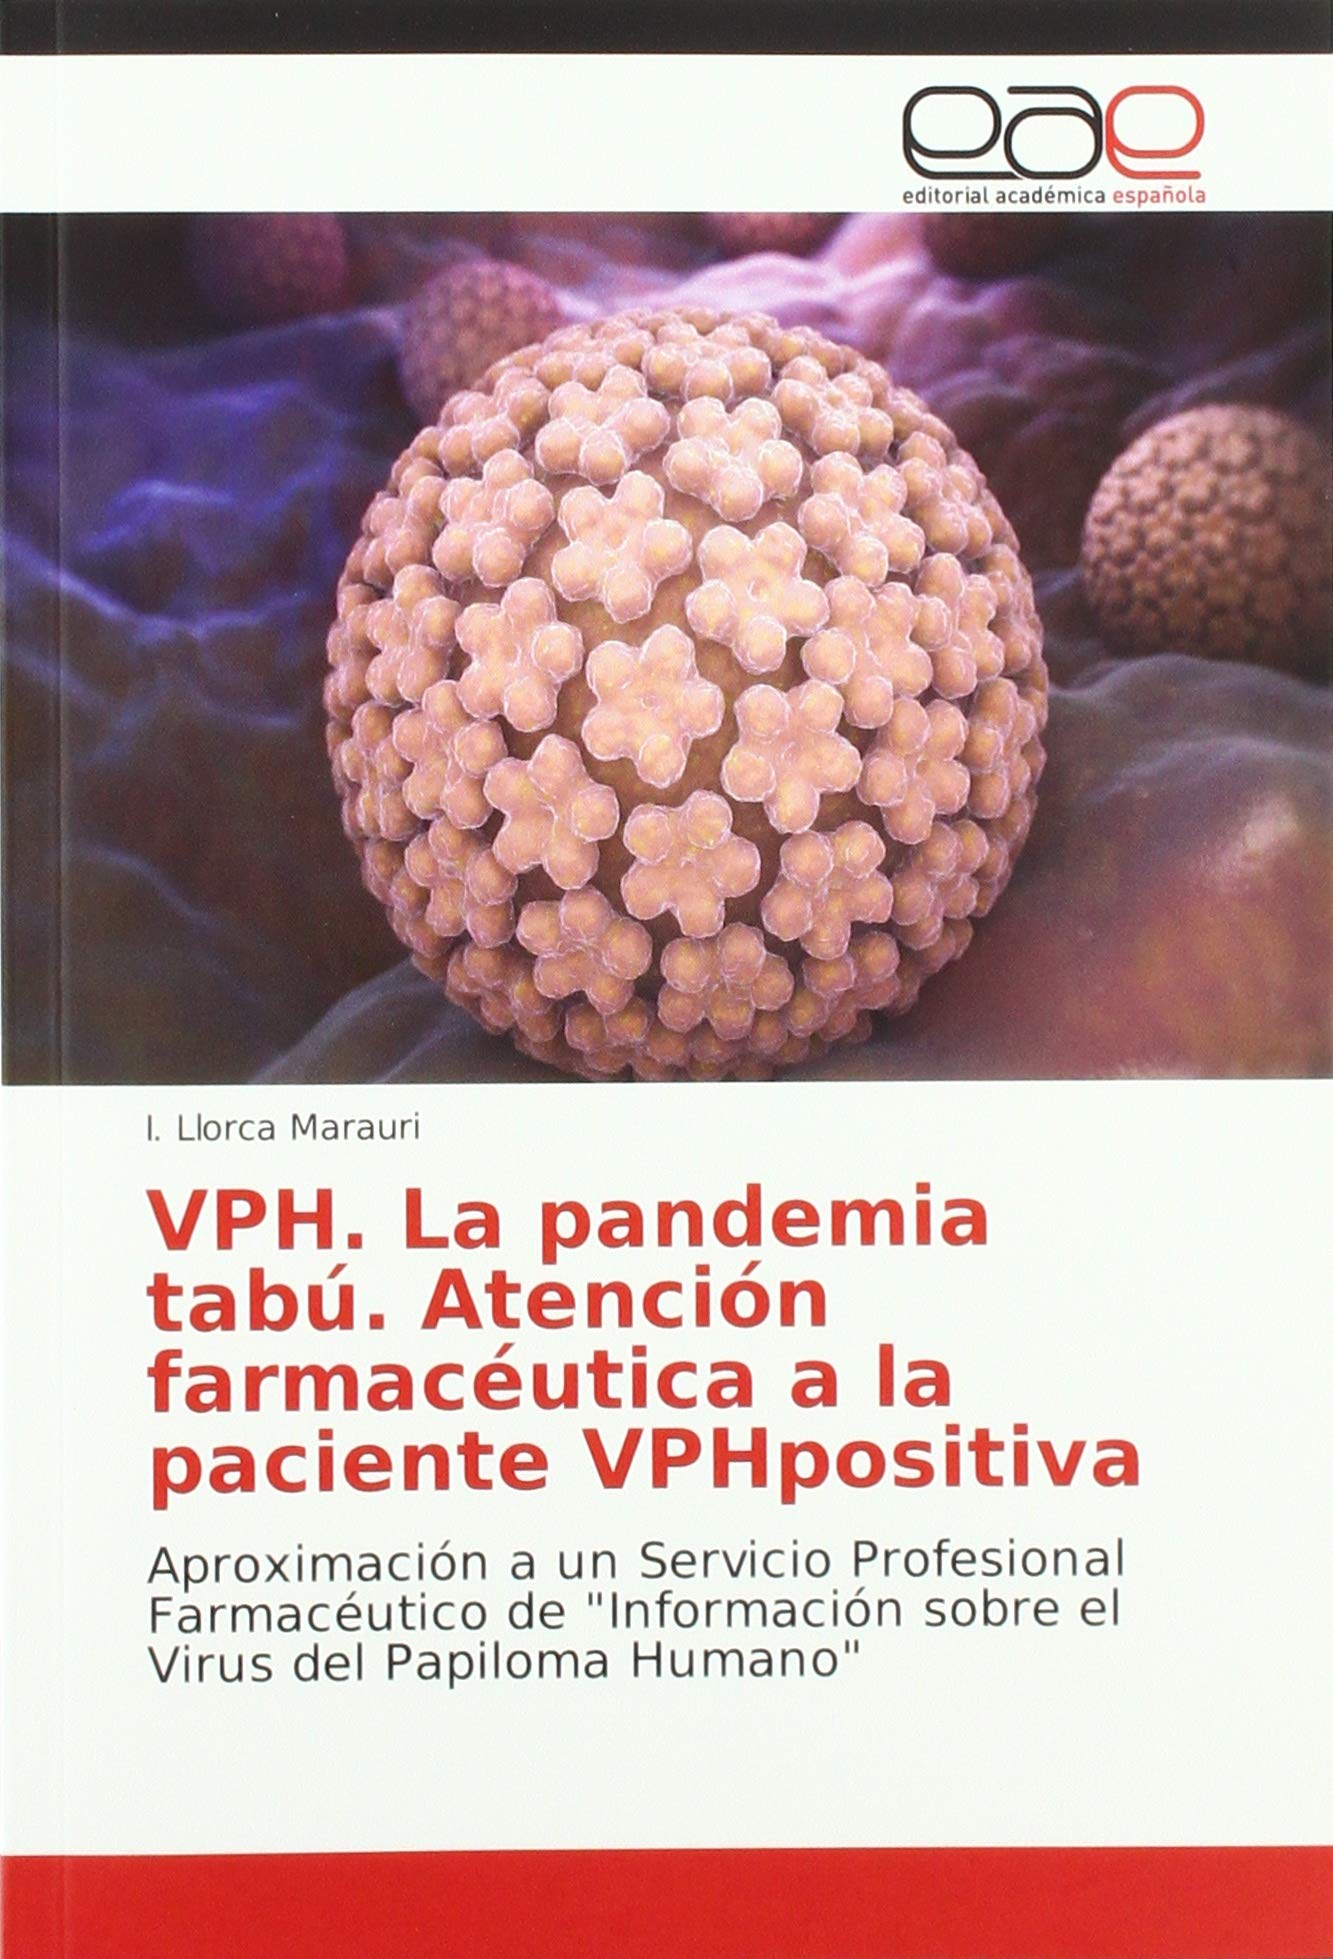 hpv virus to cancer